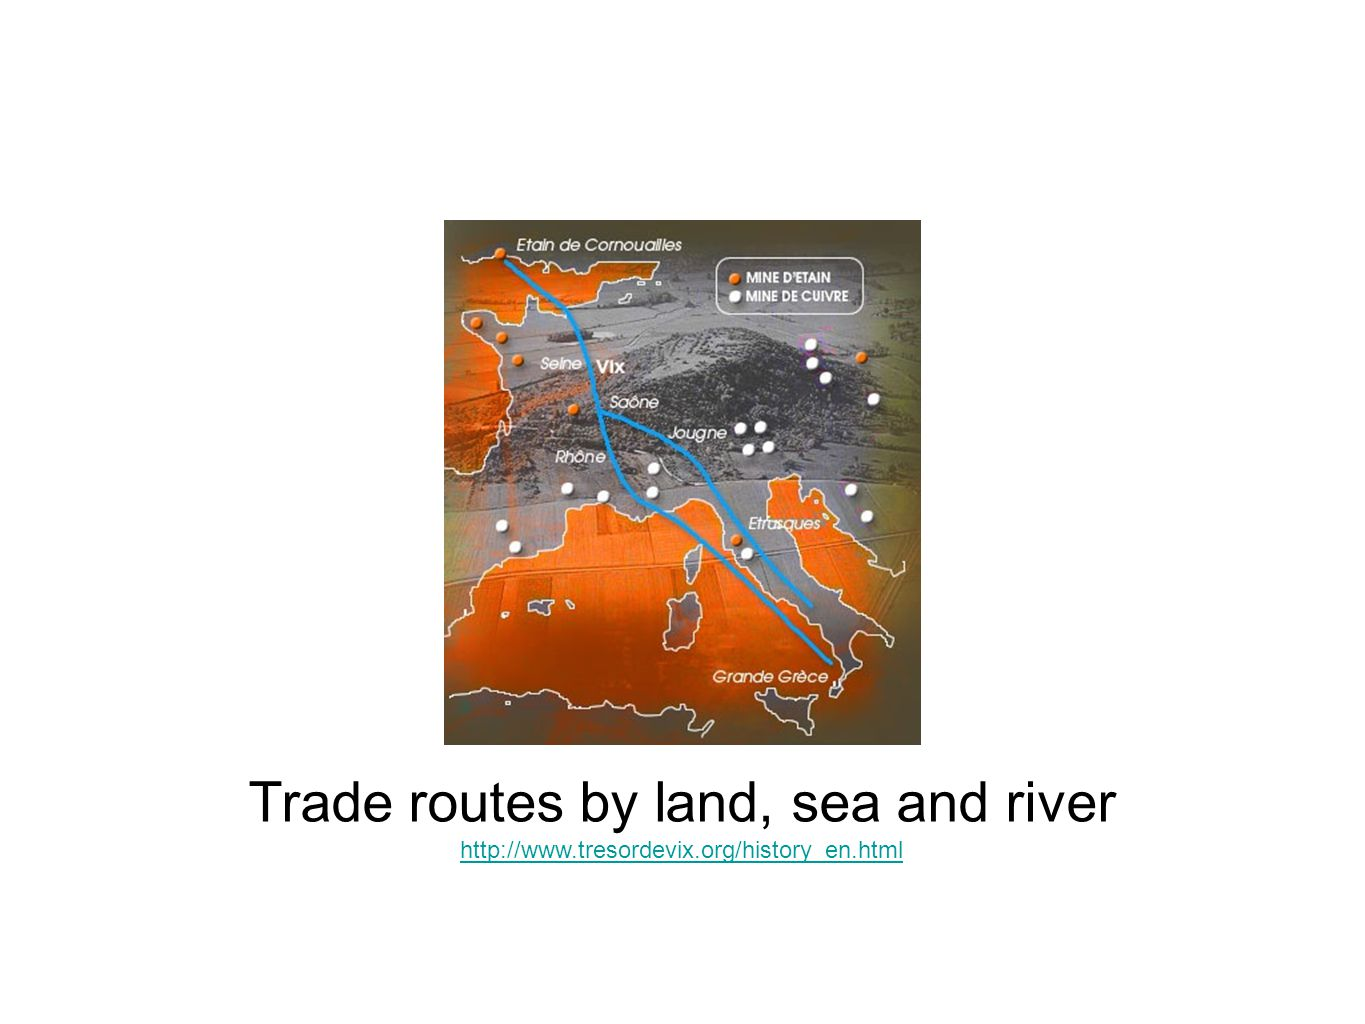 Trade routes by land, sea and river